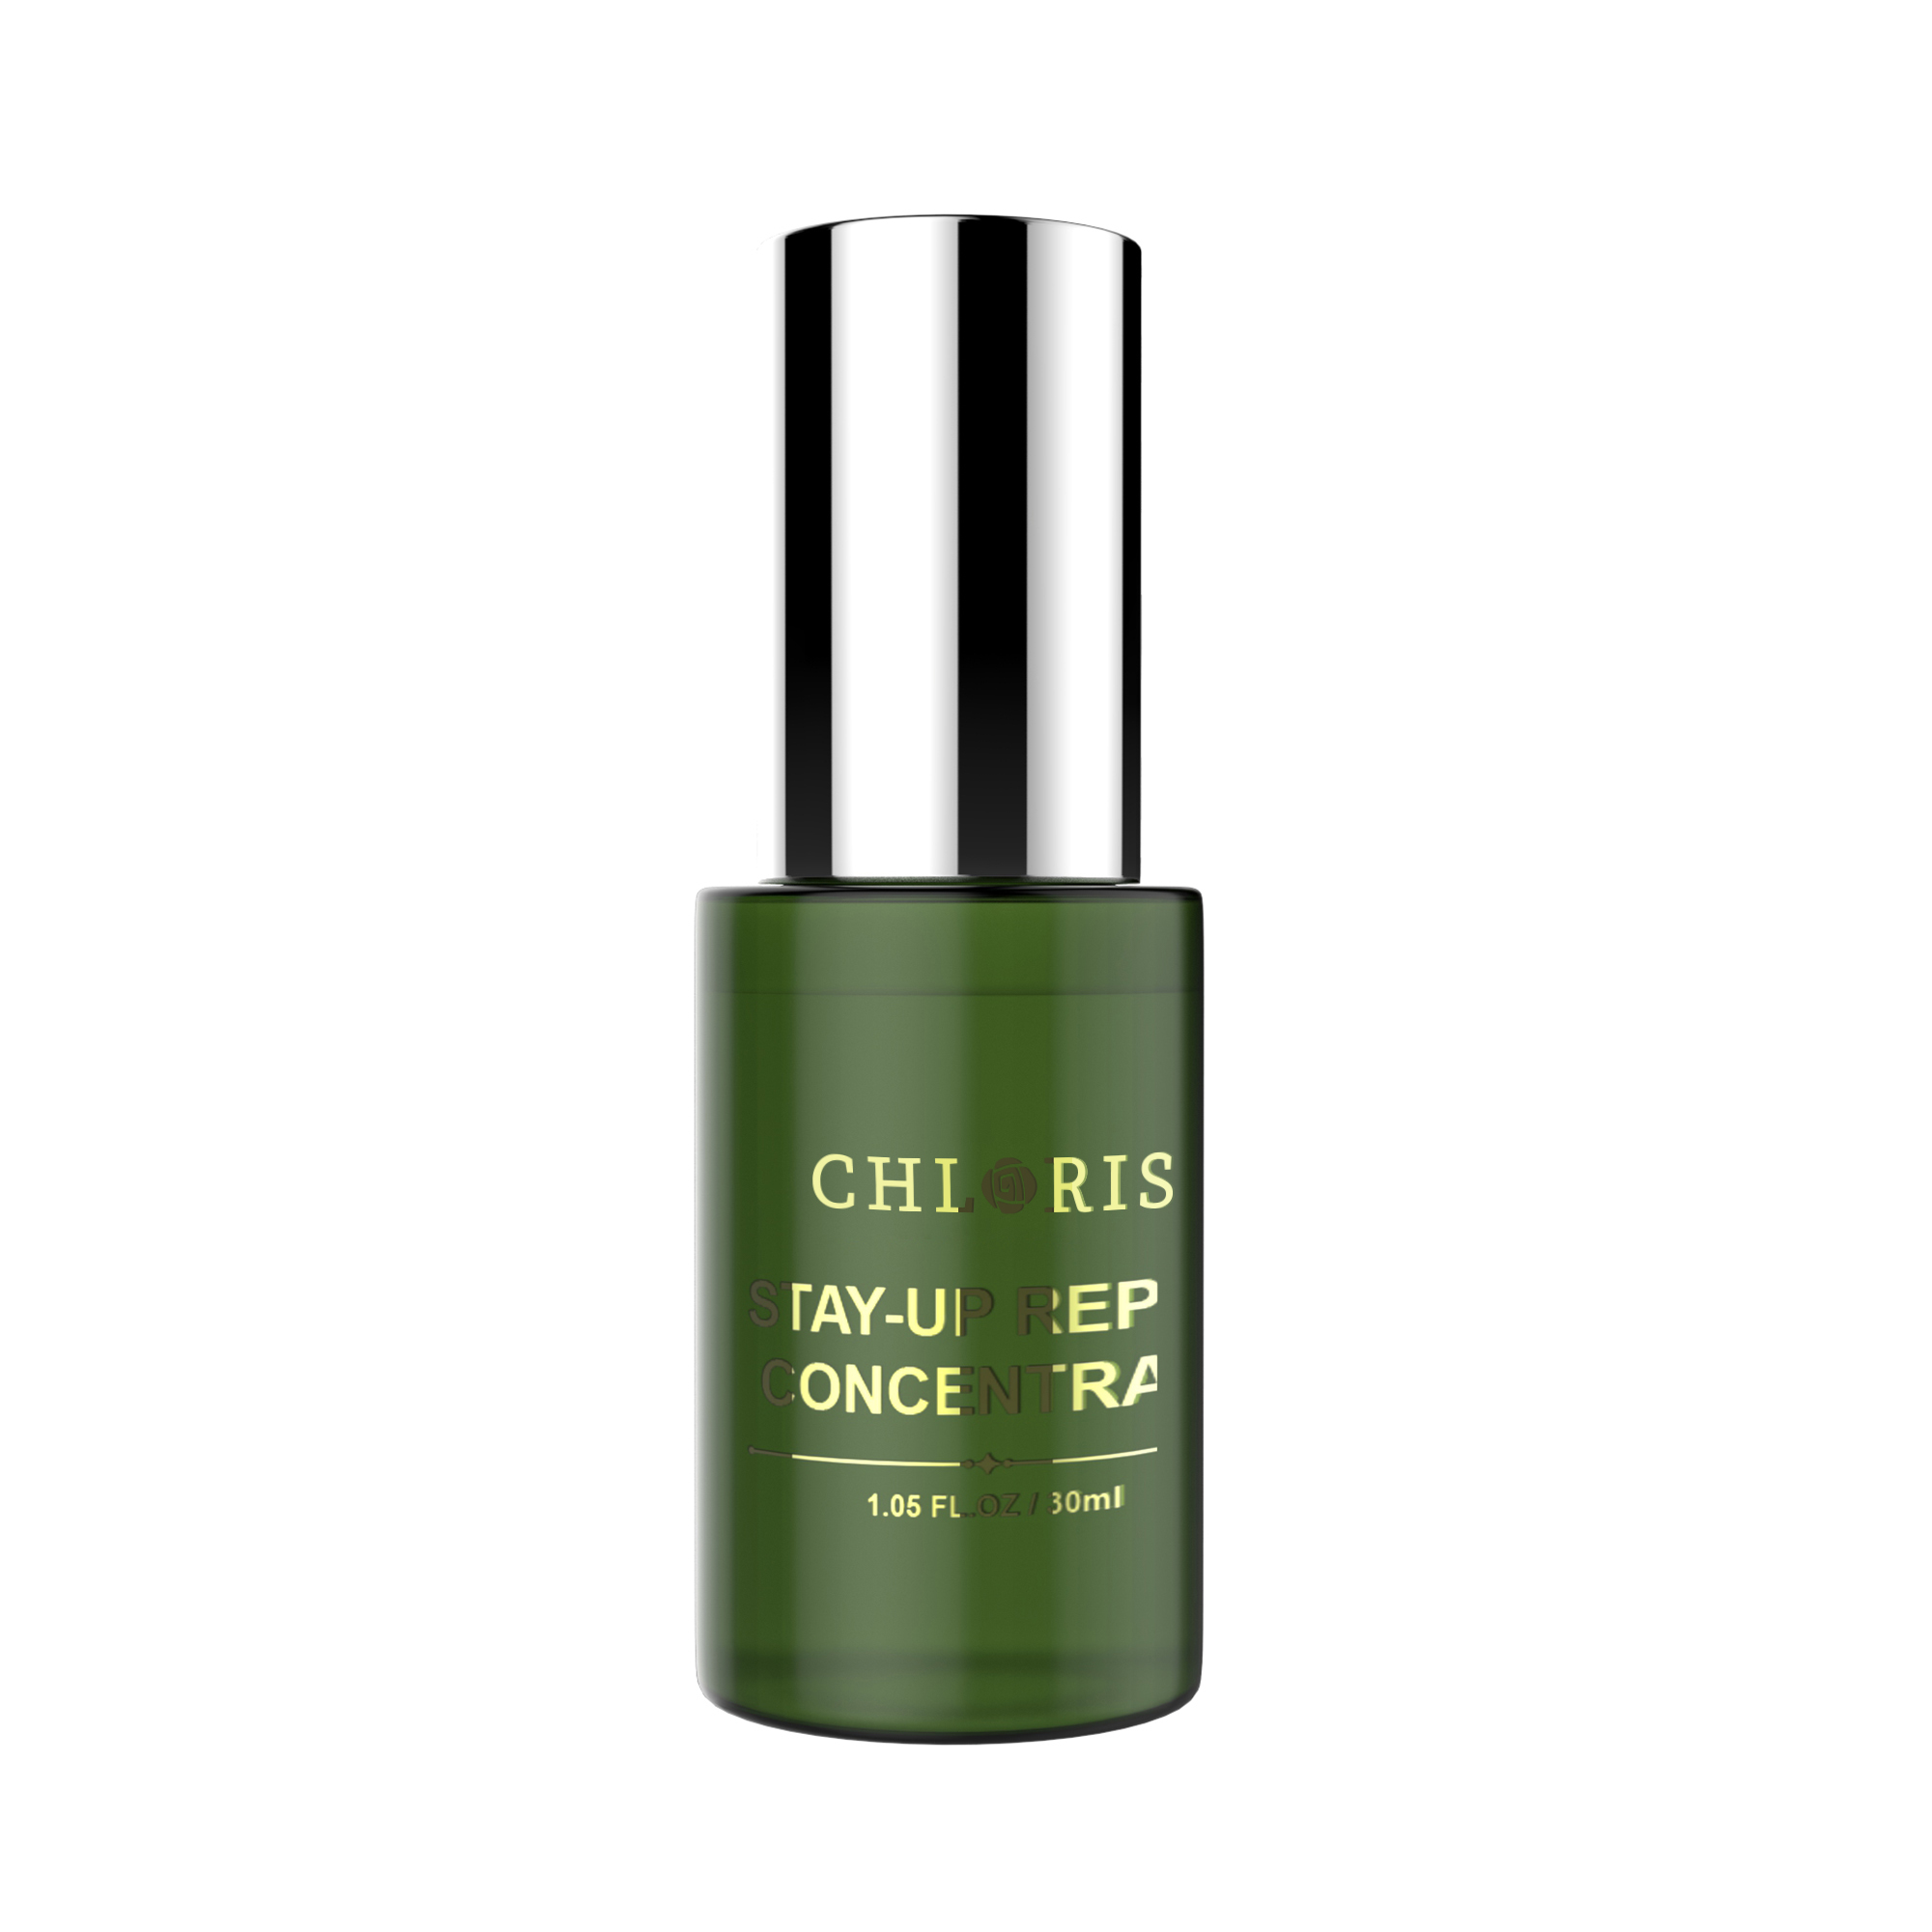 OEM Hight Quality Natural Skin Care Stay-up Repair Anti Aging Moisture Face Serum Anti Redness Serum Private Label